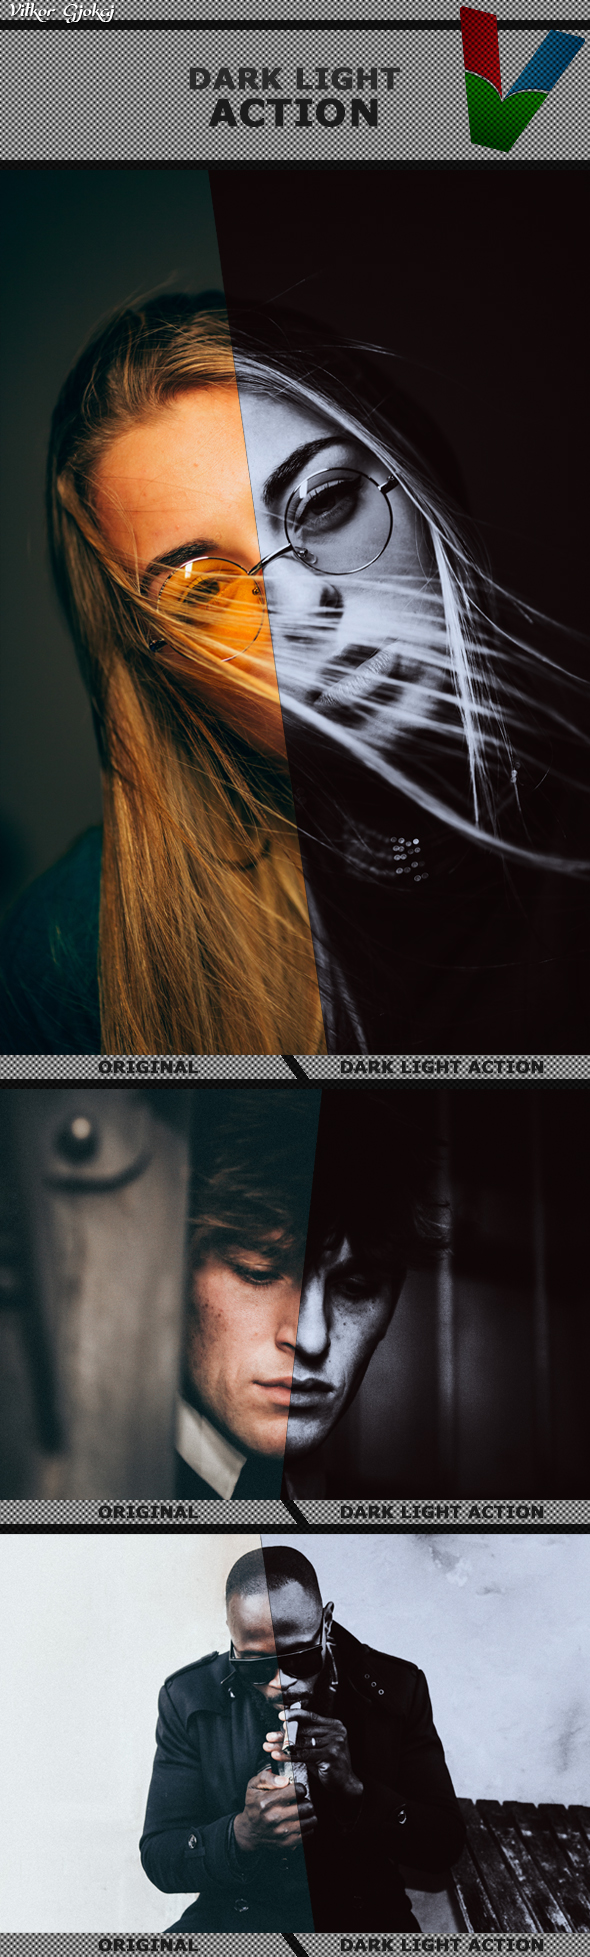 GraphicRiver Dark Light Action 20982185